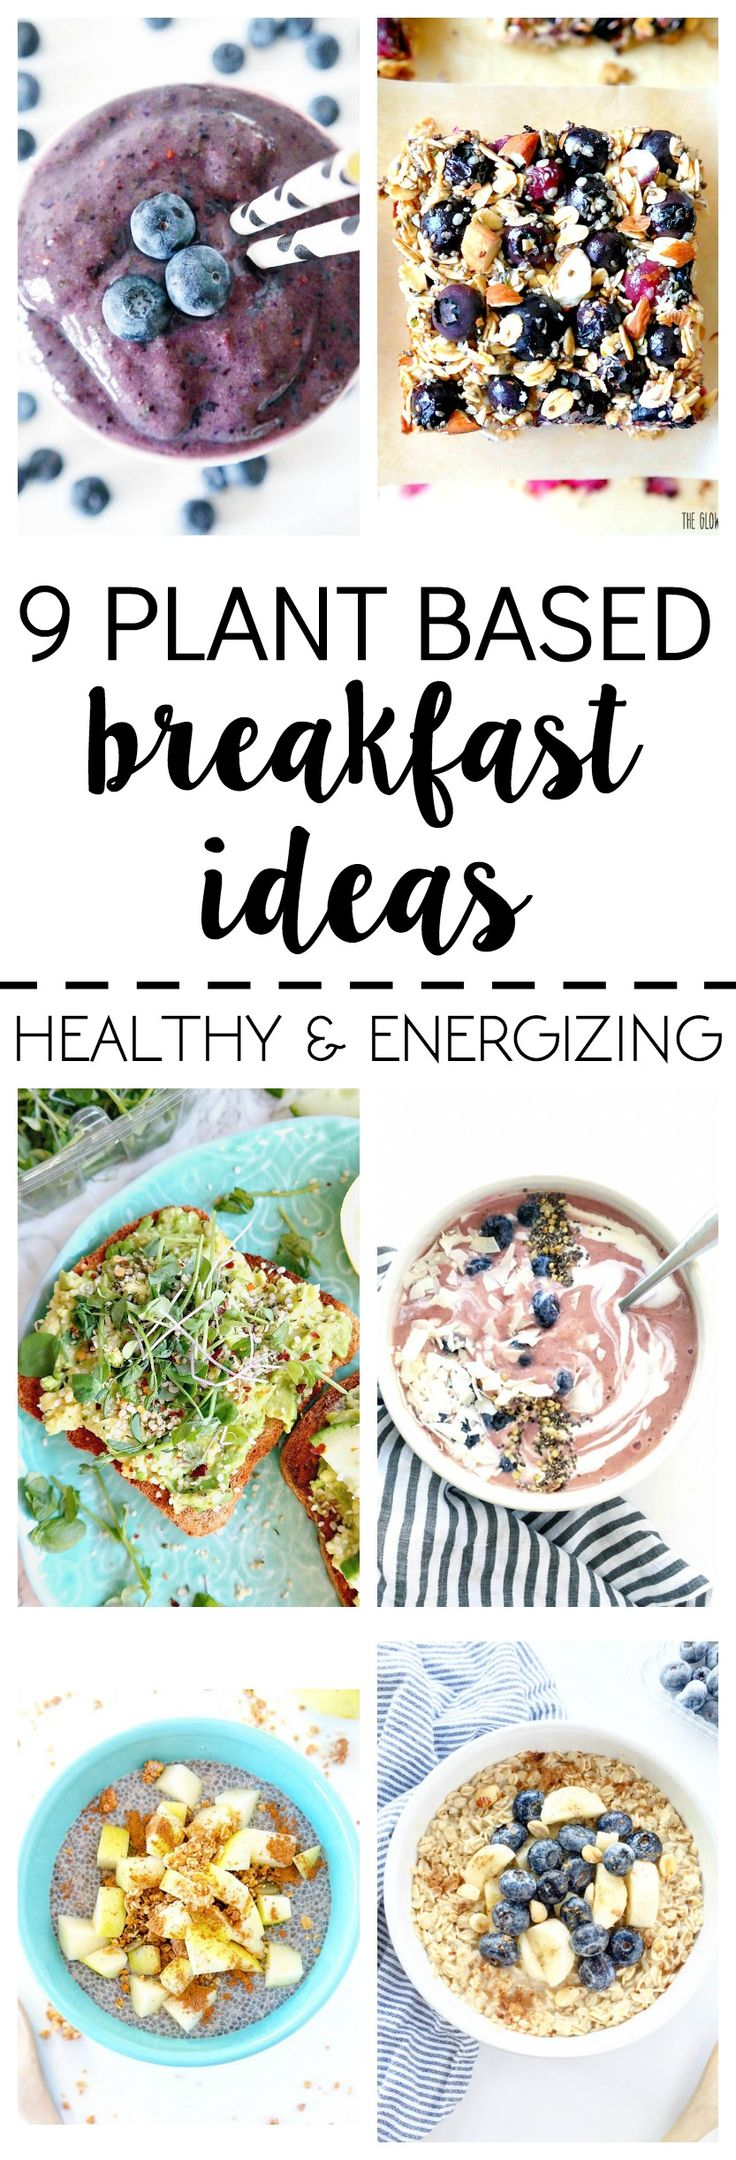 What I Ate: 9 Plant Based Breakfast Ideas